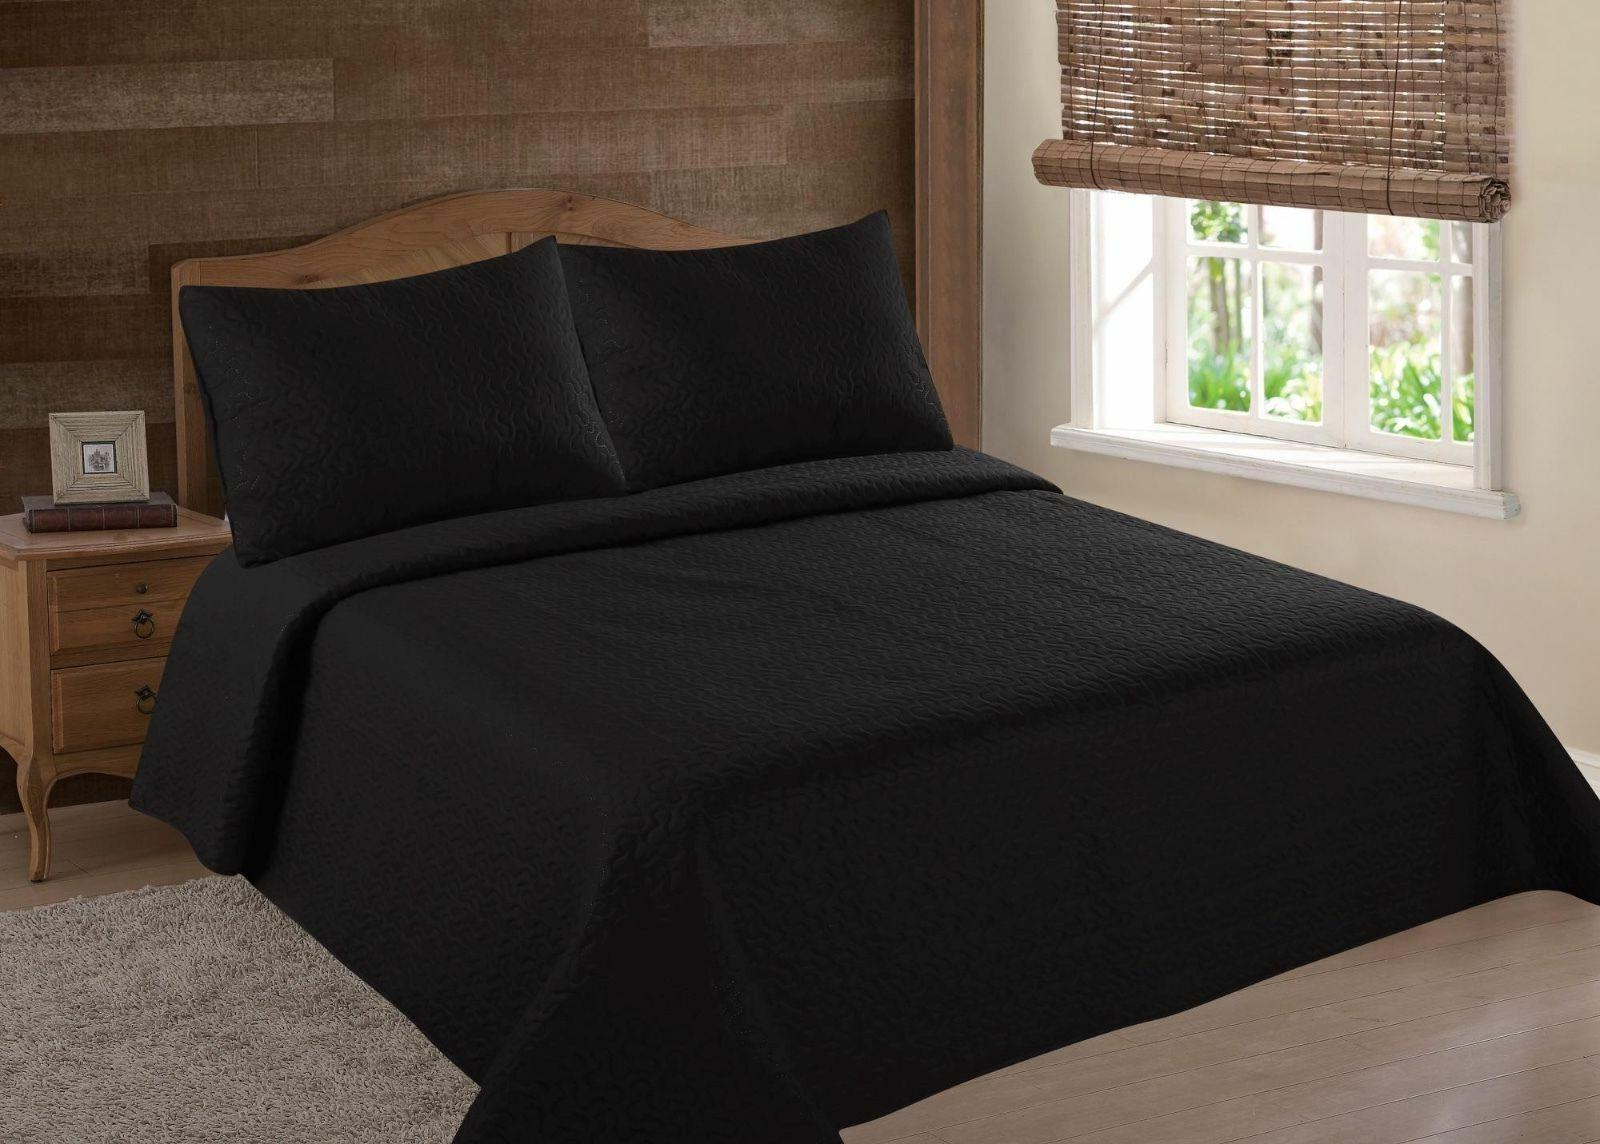 midwest black nena solid quilt bedding bedspread